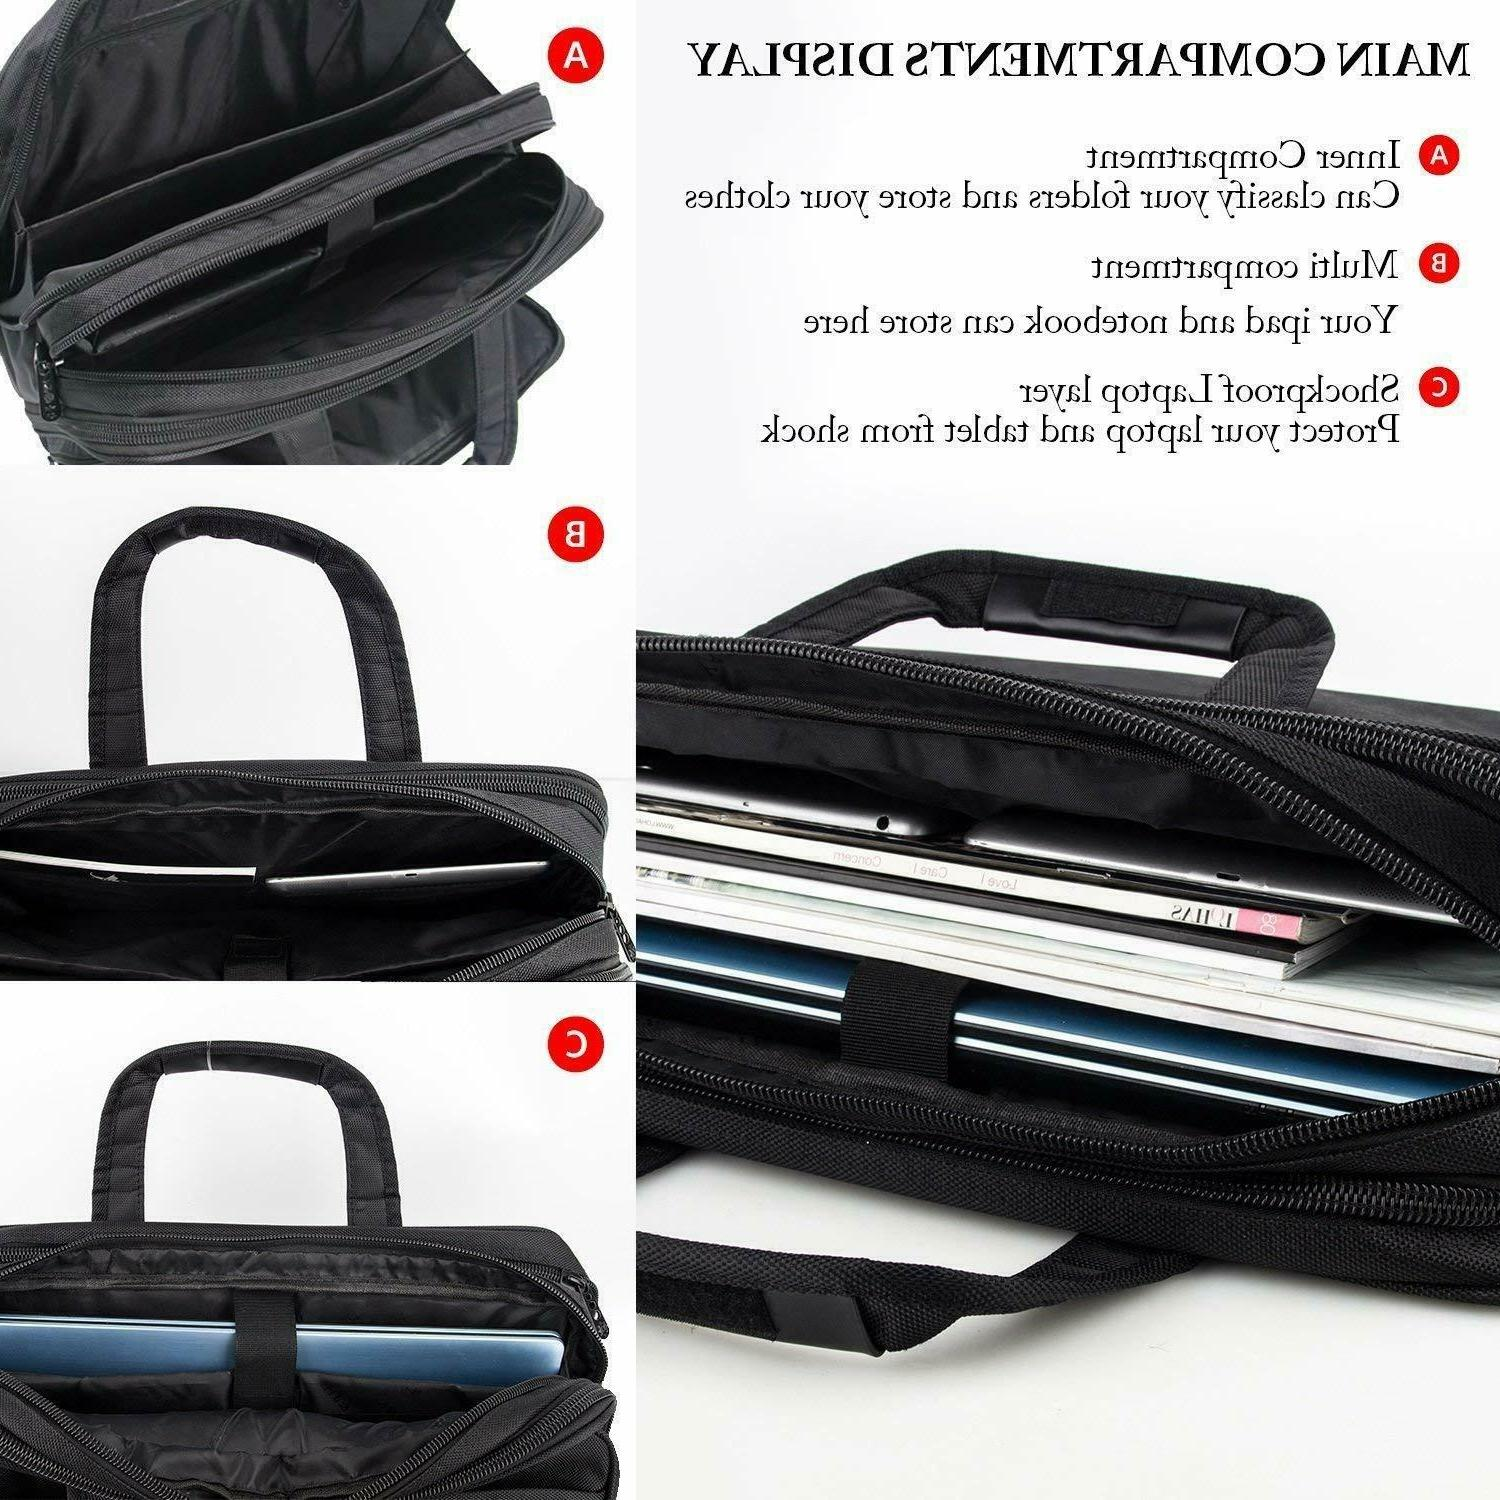 17 inch Laptop Travel with Hybrid